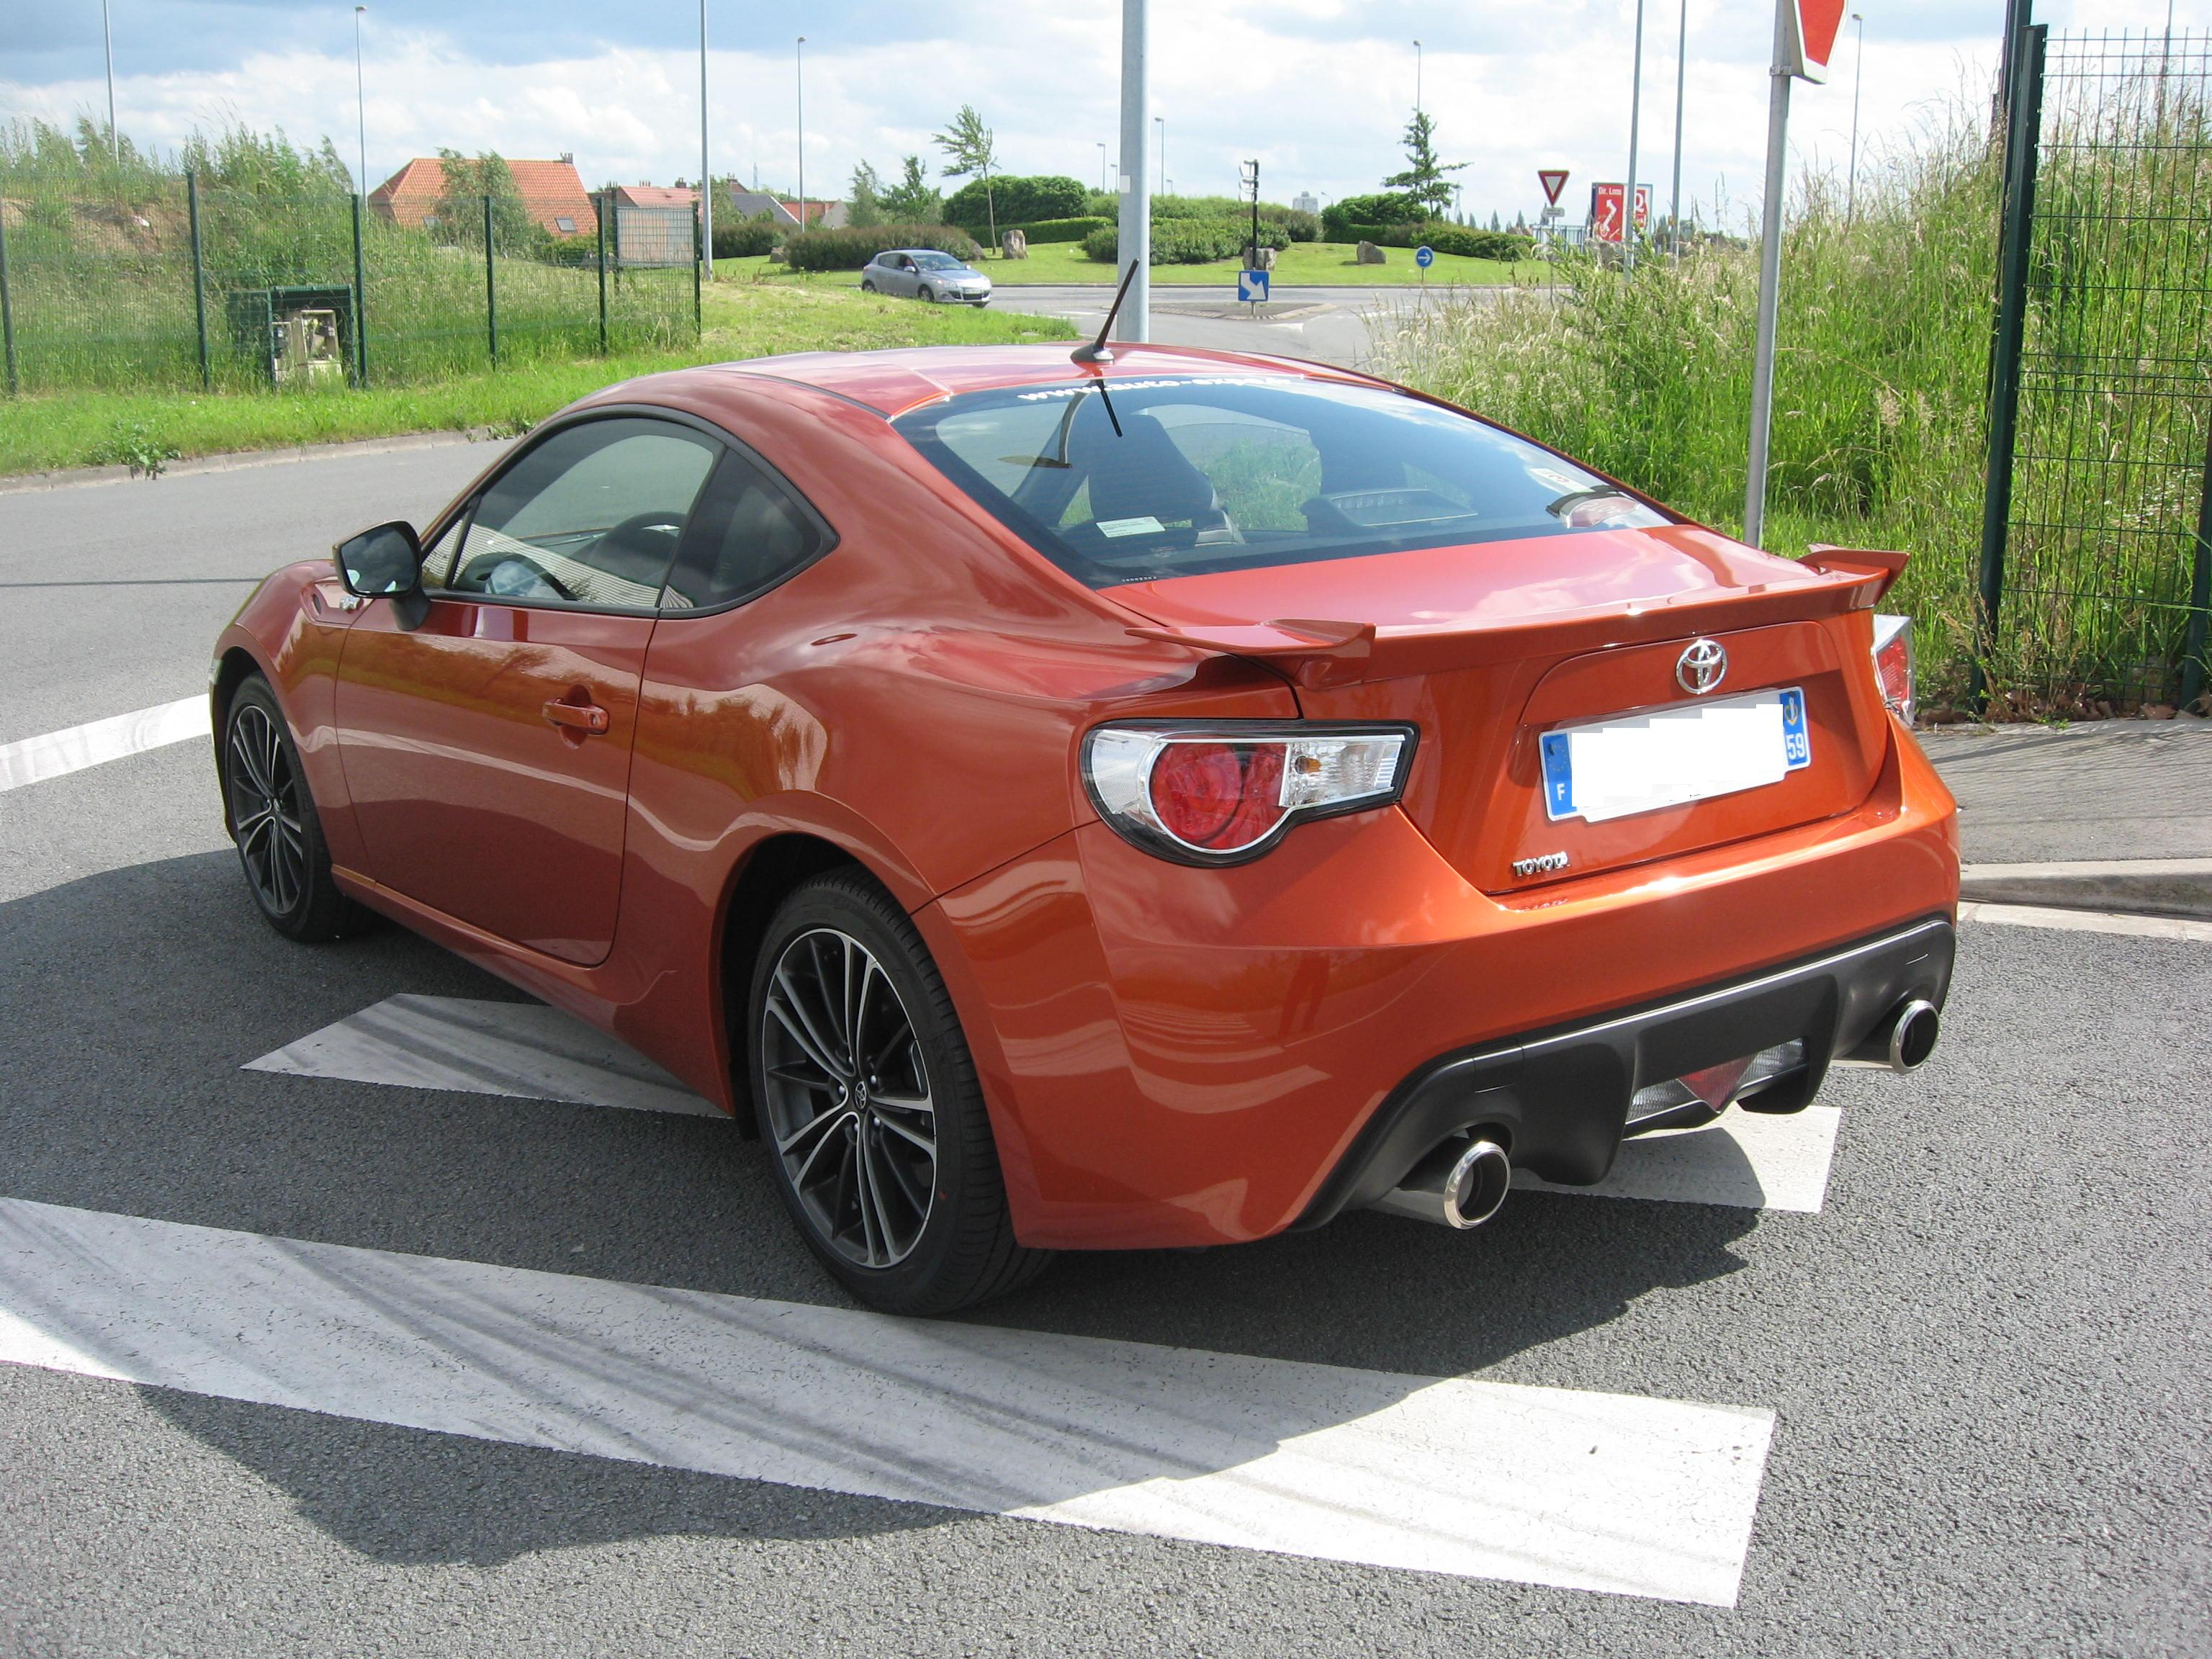 test drive rpt toyota gt86 2 0 200ch bvm 2012 page 4 auto titre. Black Bedroom Furniture Sets. Home Design Ideas